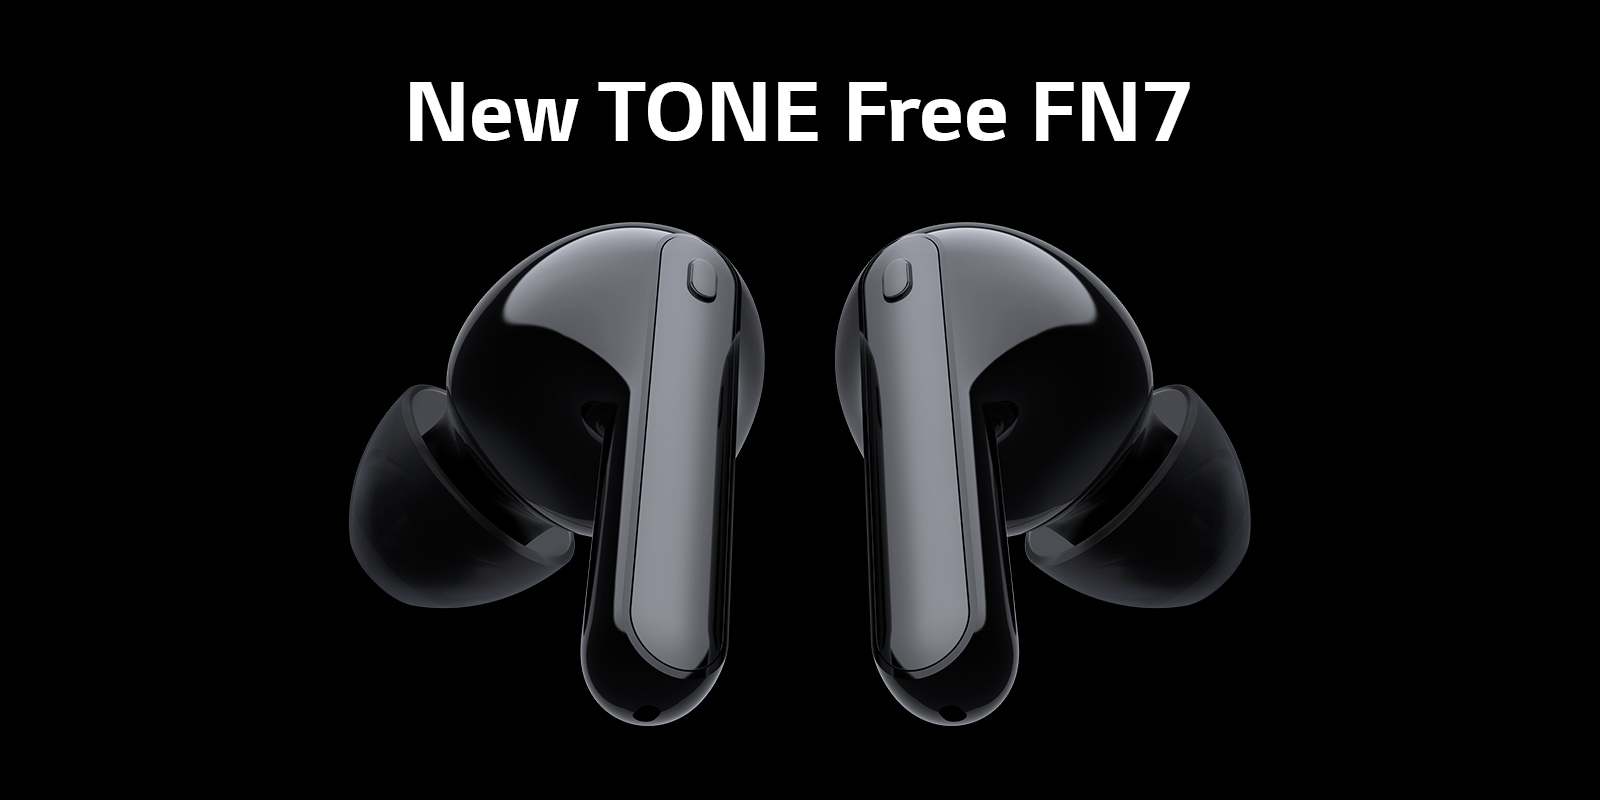 Two earbuds are floating in the black background.